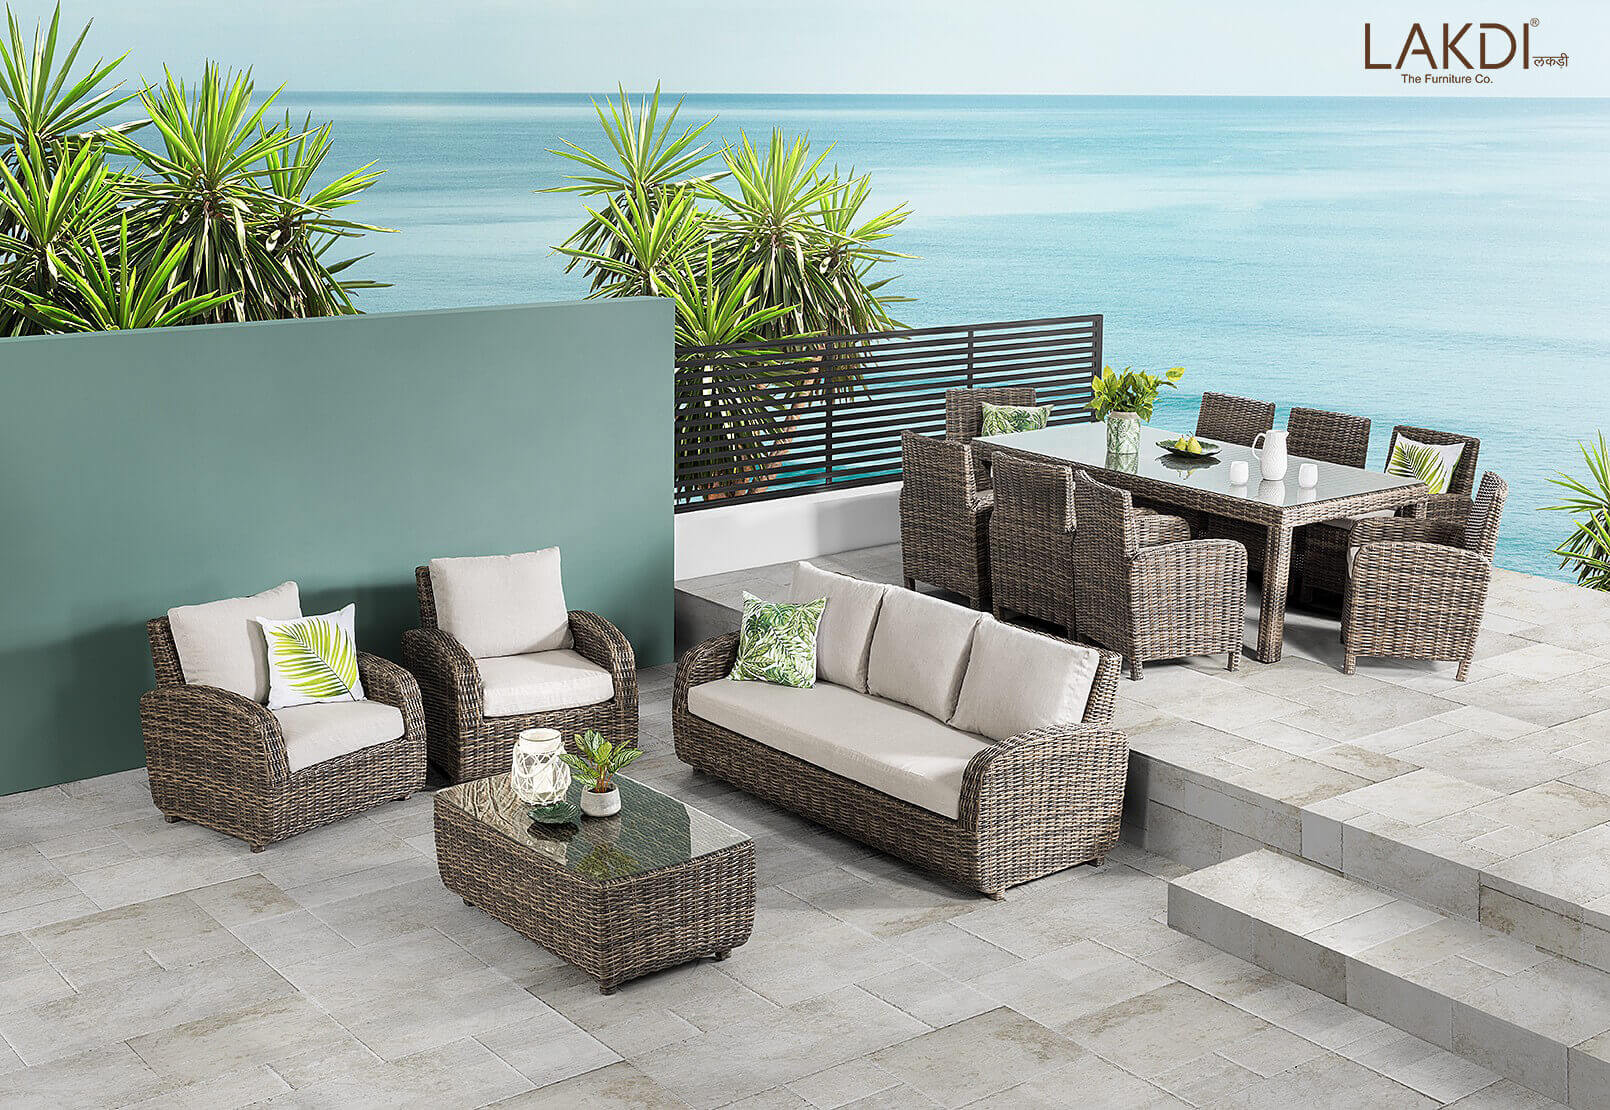 Outdoor simply good looking for lakdi furniture 30